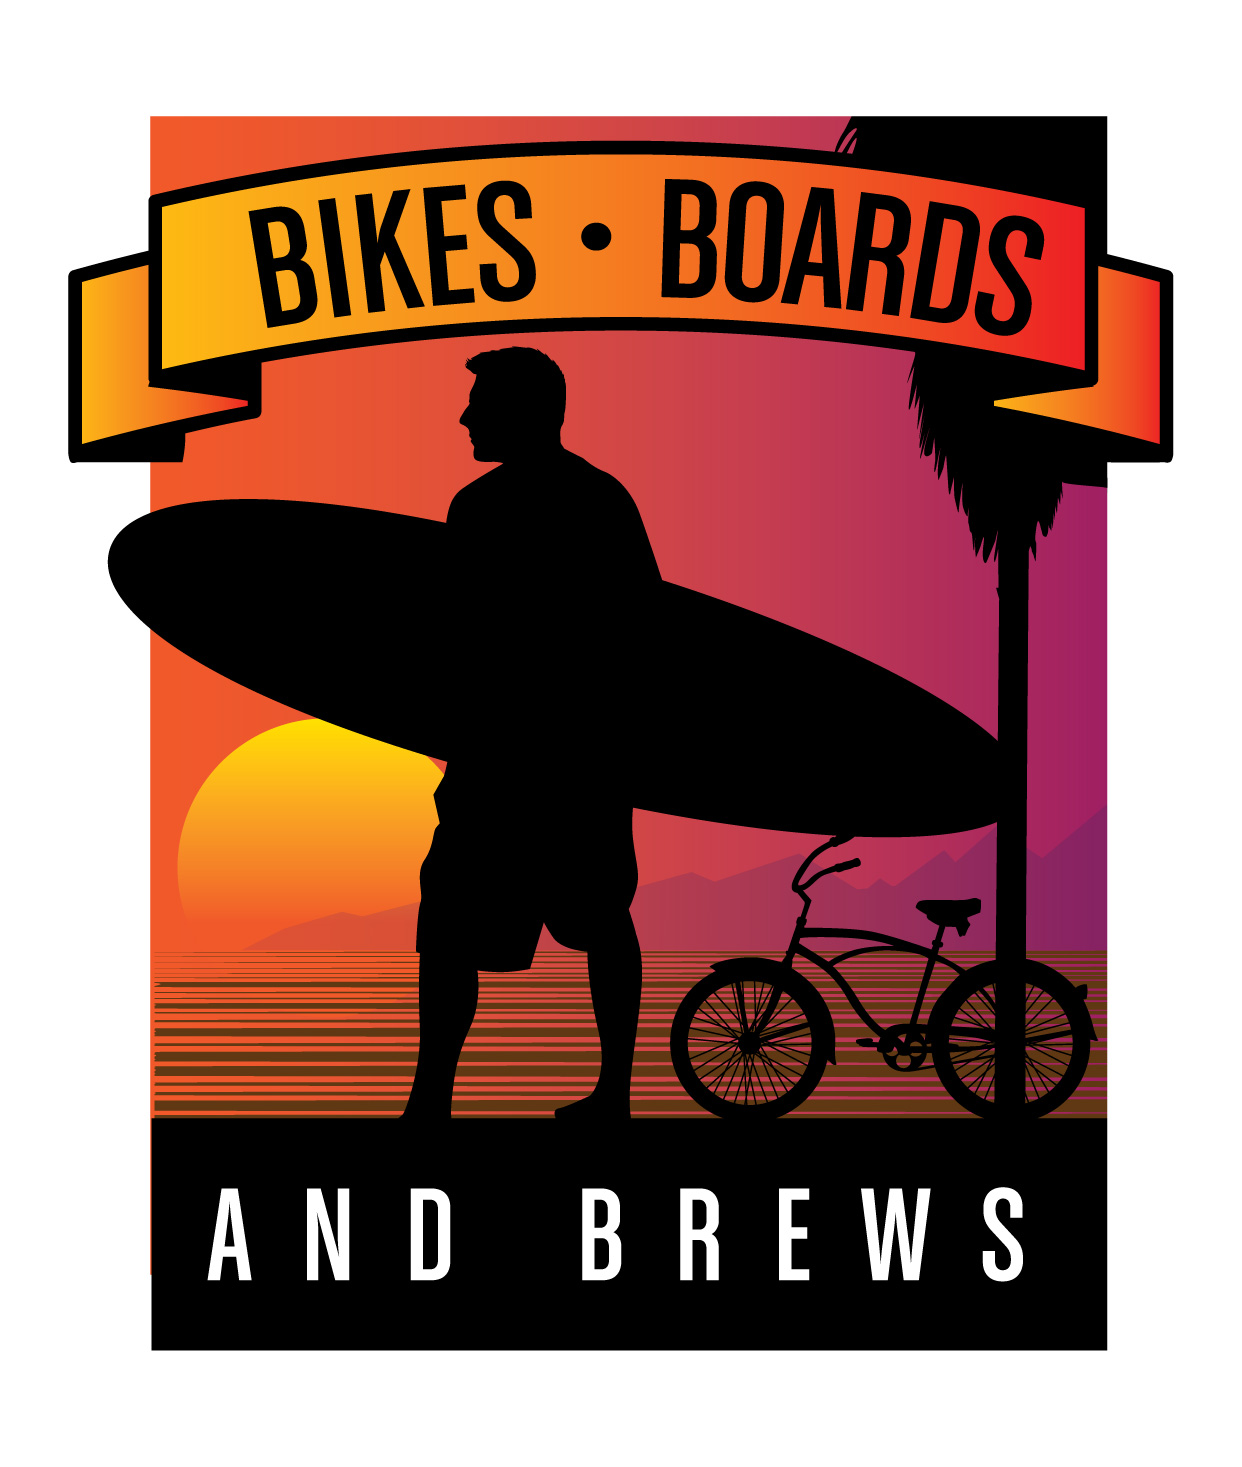 Bikes And Boards Bikes Boards and Brews